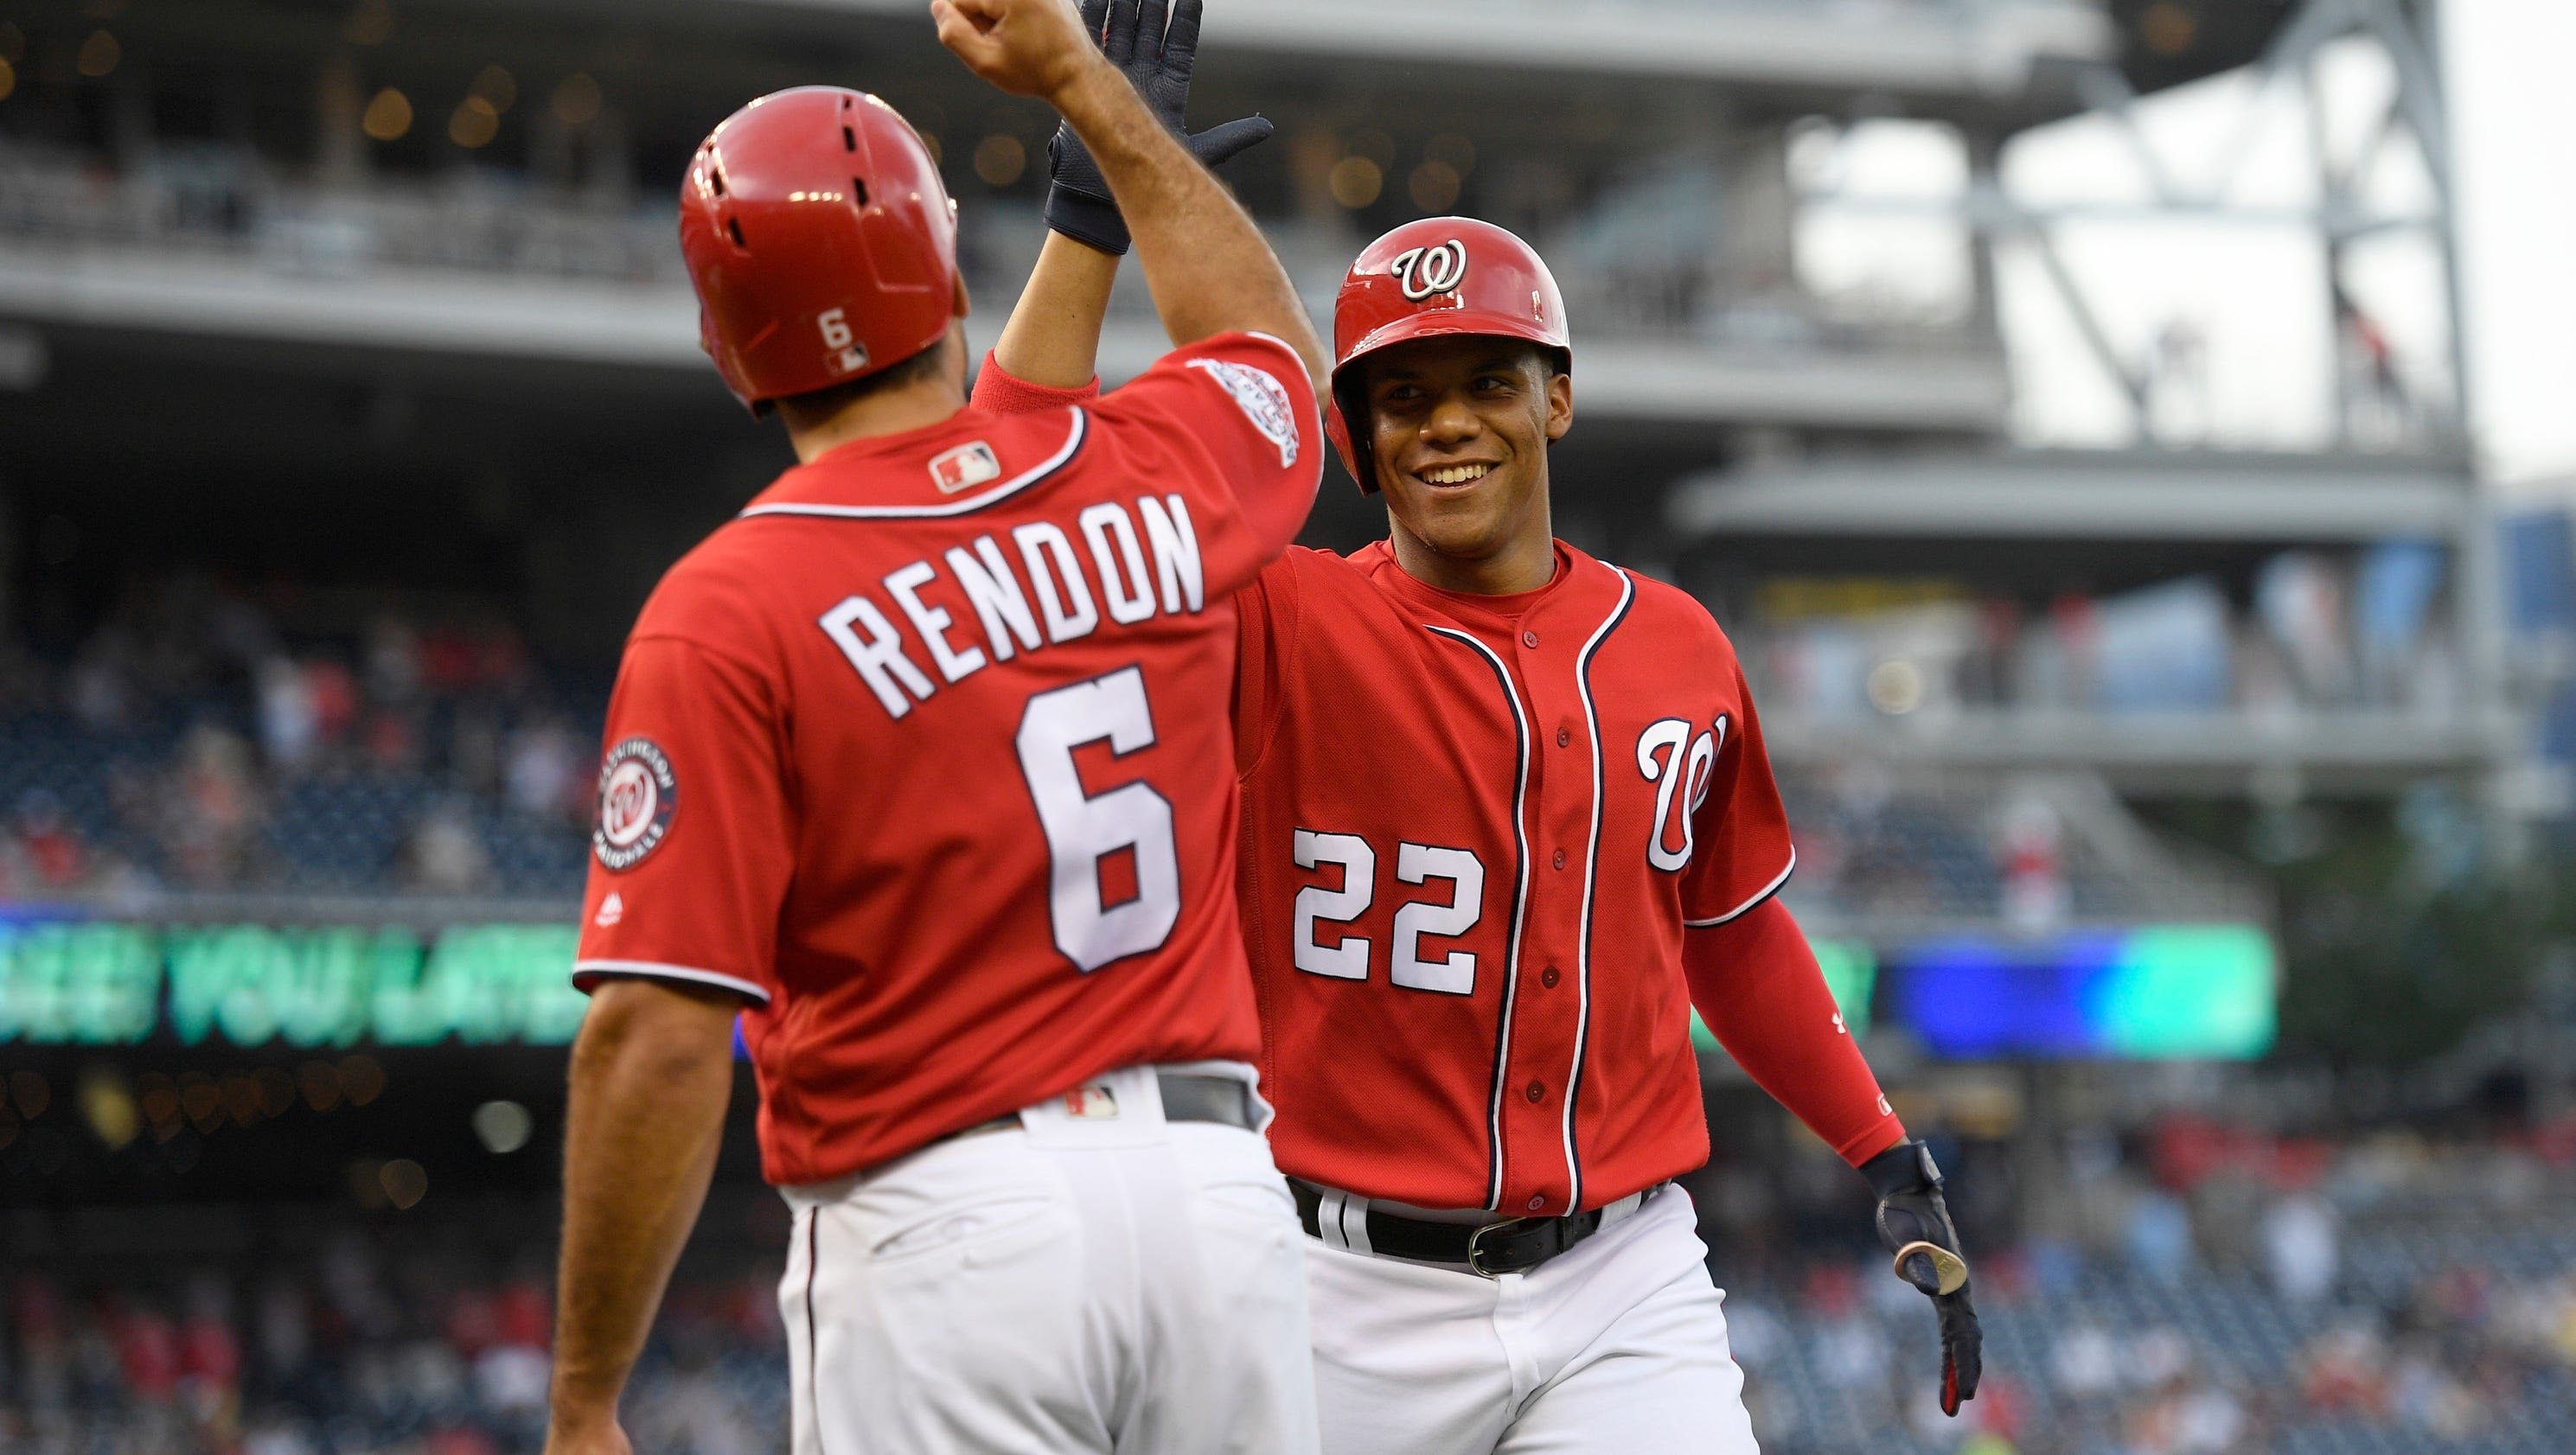 636649409262076028-ap-yankees-nationals-baseball-100751429